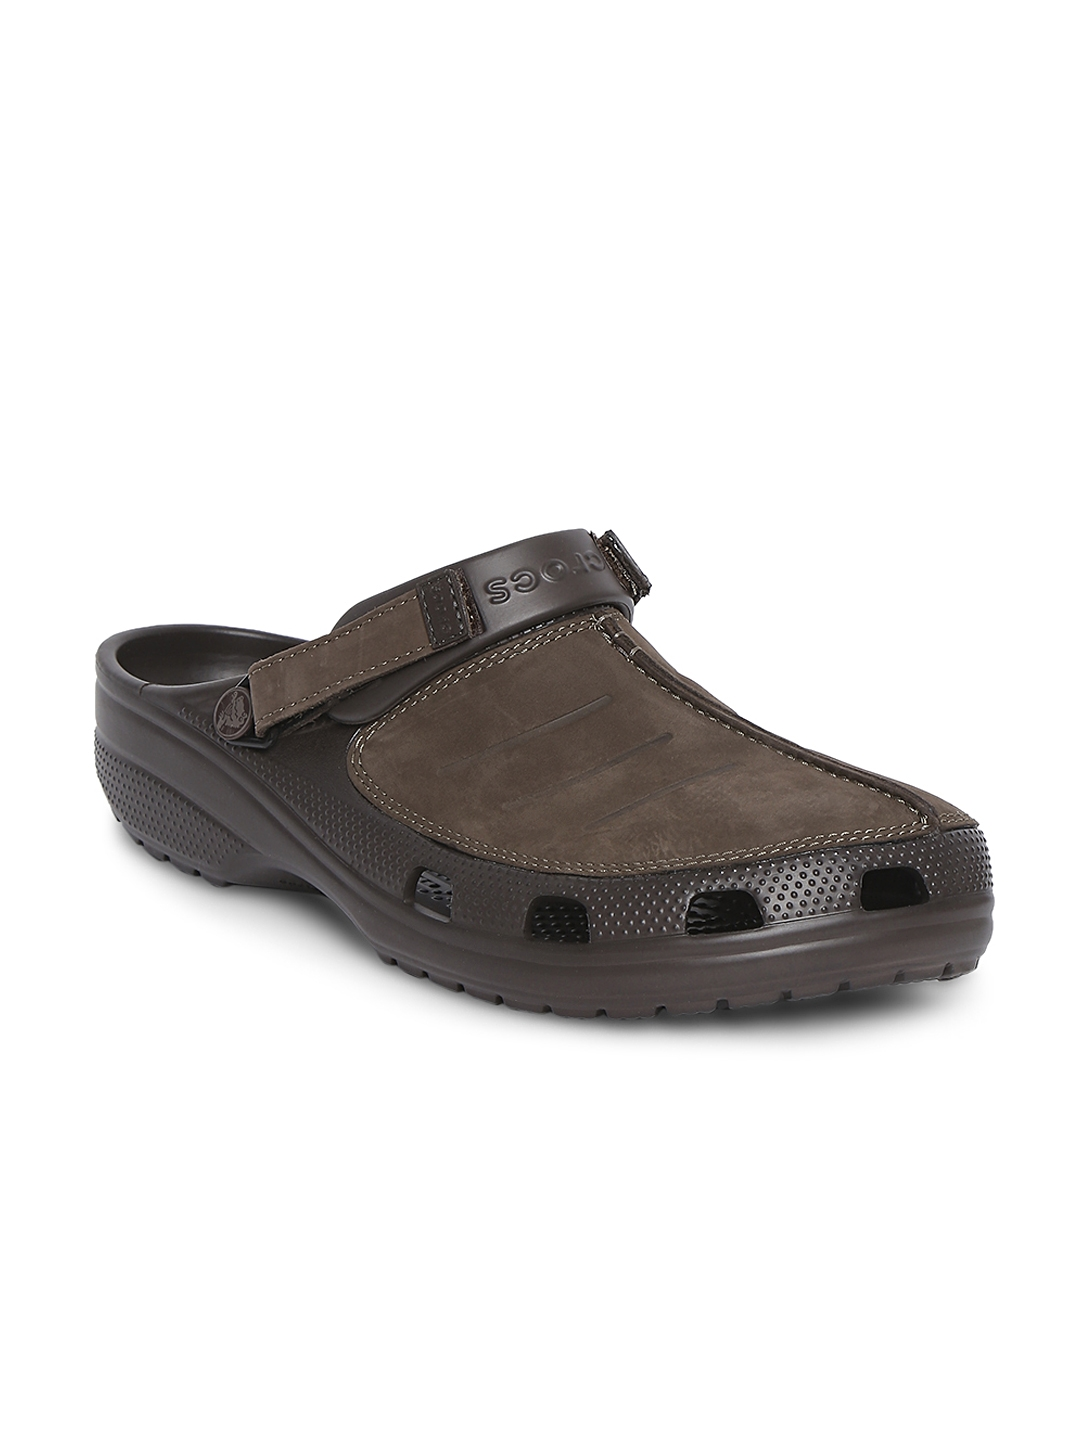 b19eadba8a614 Buy Crocs Men Brown Genuine Leather Clogs - Flip Flops for Men ...